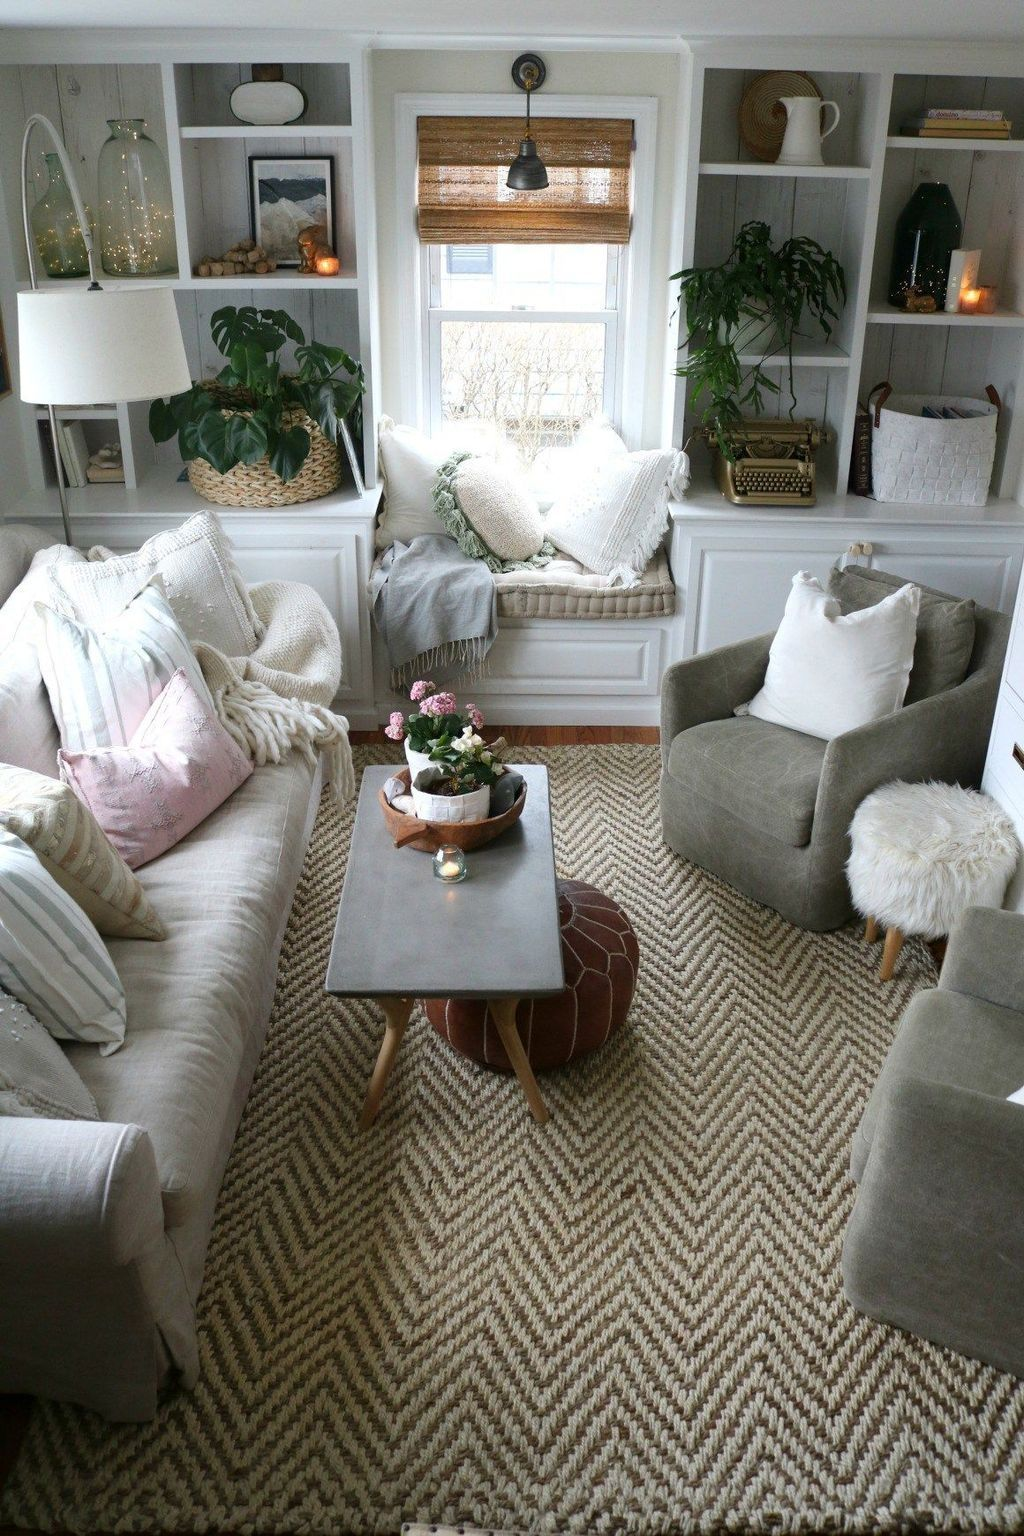 50 Small Living Room Ideas: 50 Beautiful Small Space Living Room Decoration Ideas